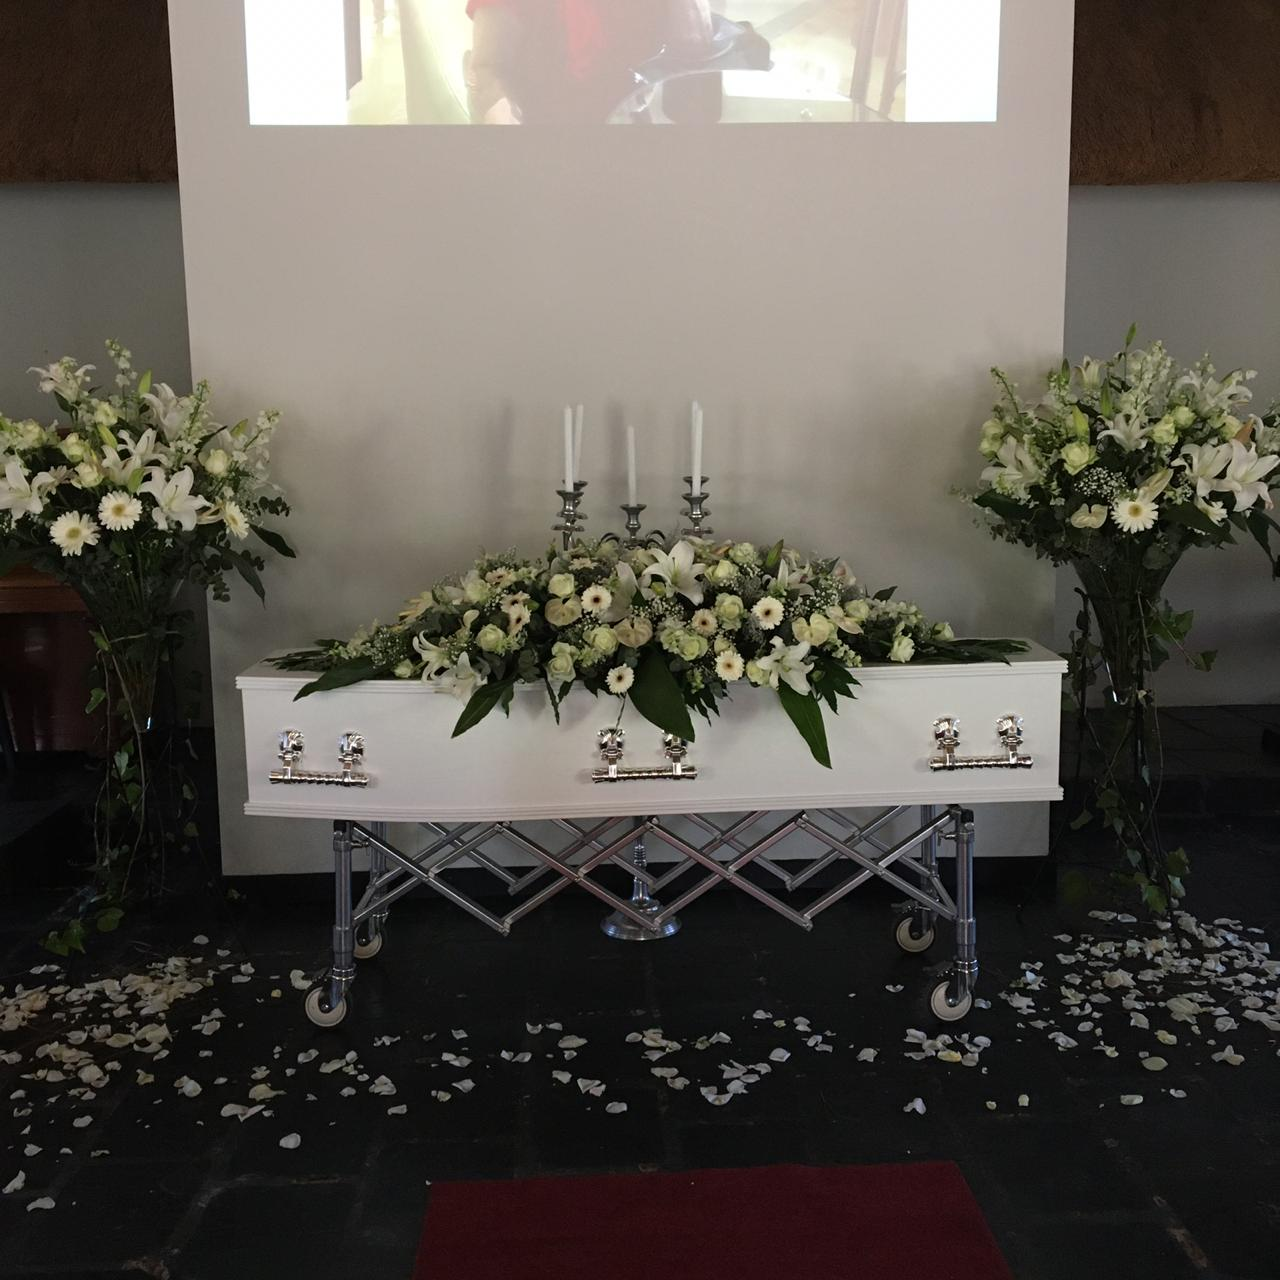 Chapel setup for a funeral with white flowers from